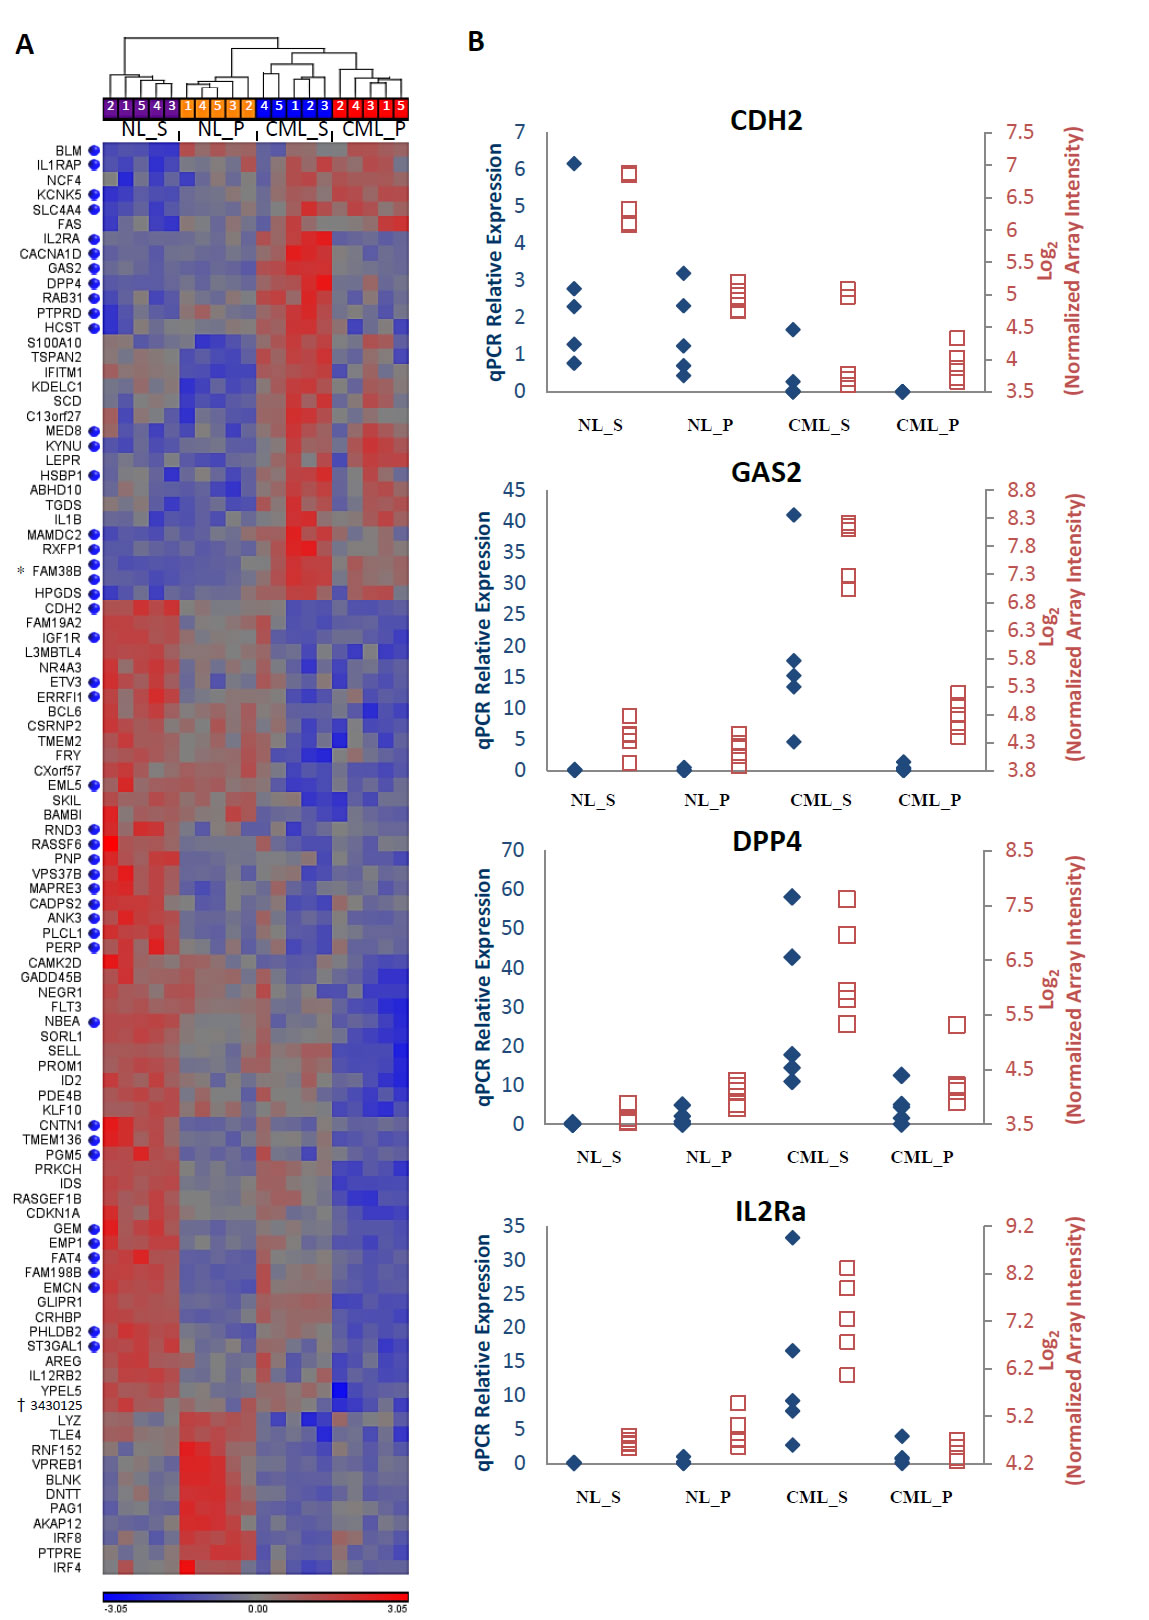 Differentially expressed genes between CML and normal stem and progenitor cells.